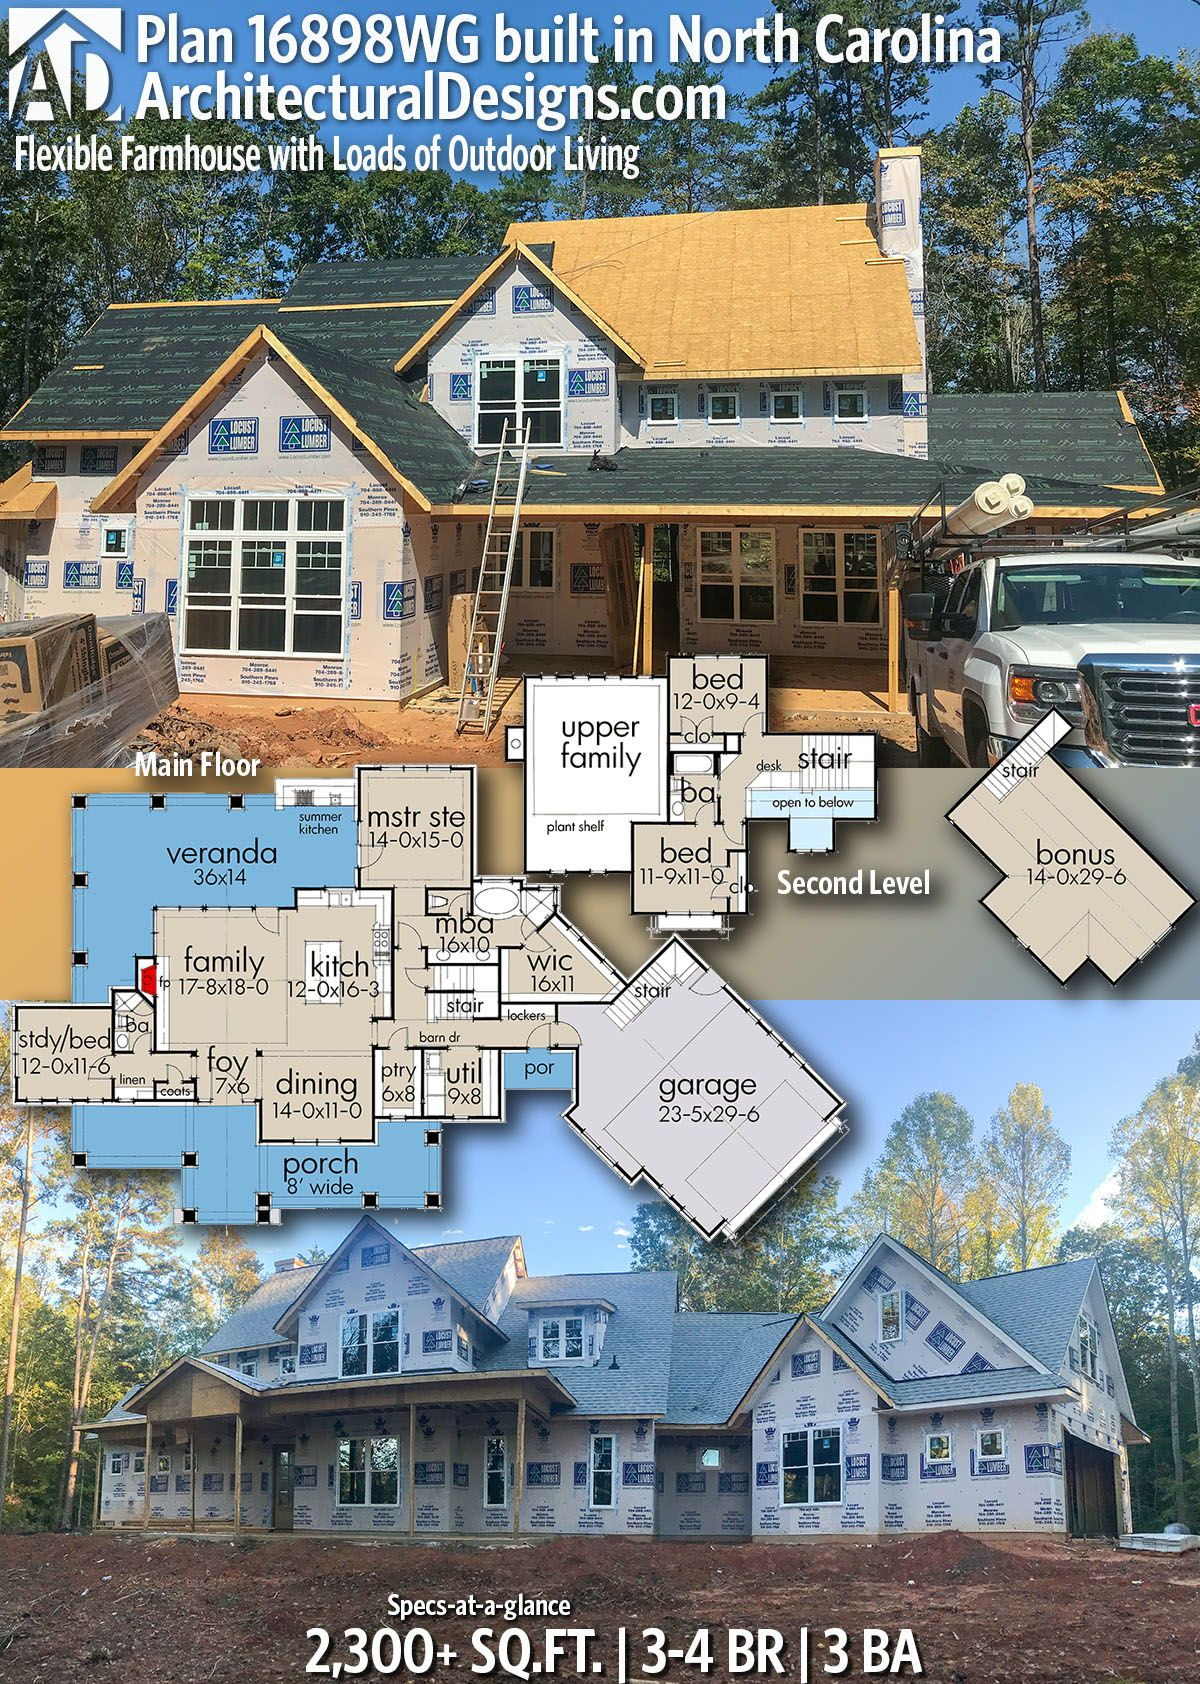 Architectural designs modern farmhouse plan wg is coming to life in north carolina this home gives you over square feet of heated living also rh pinterest